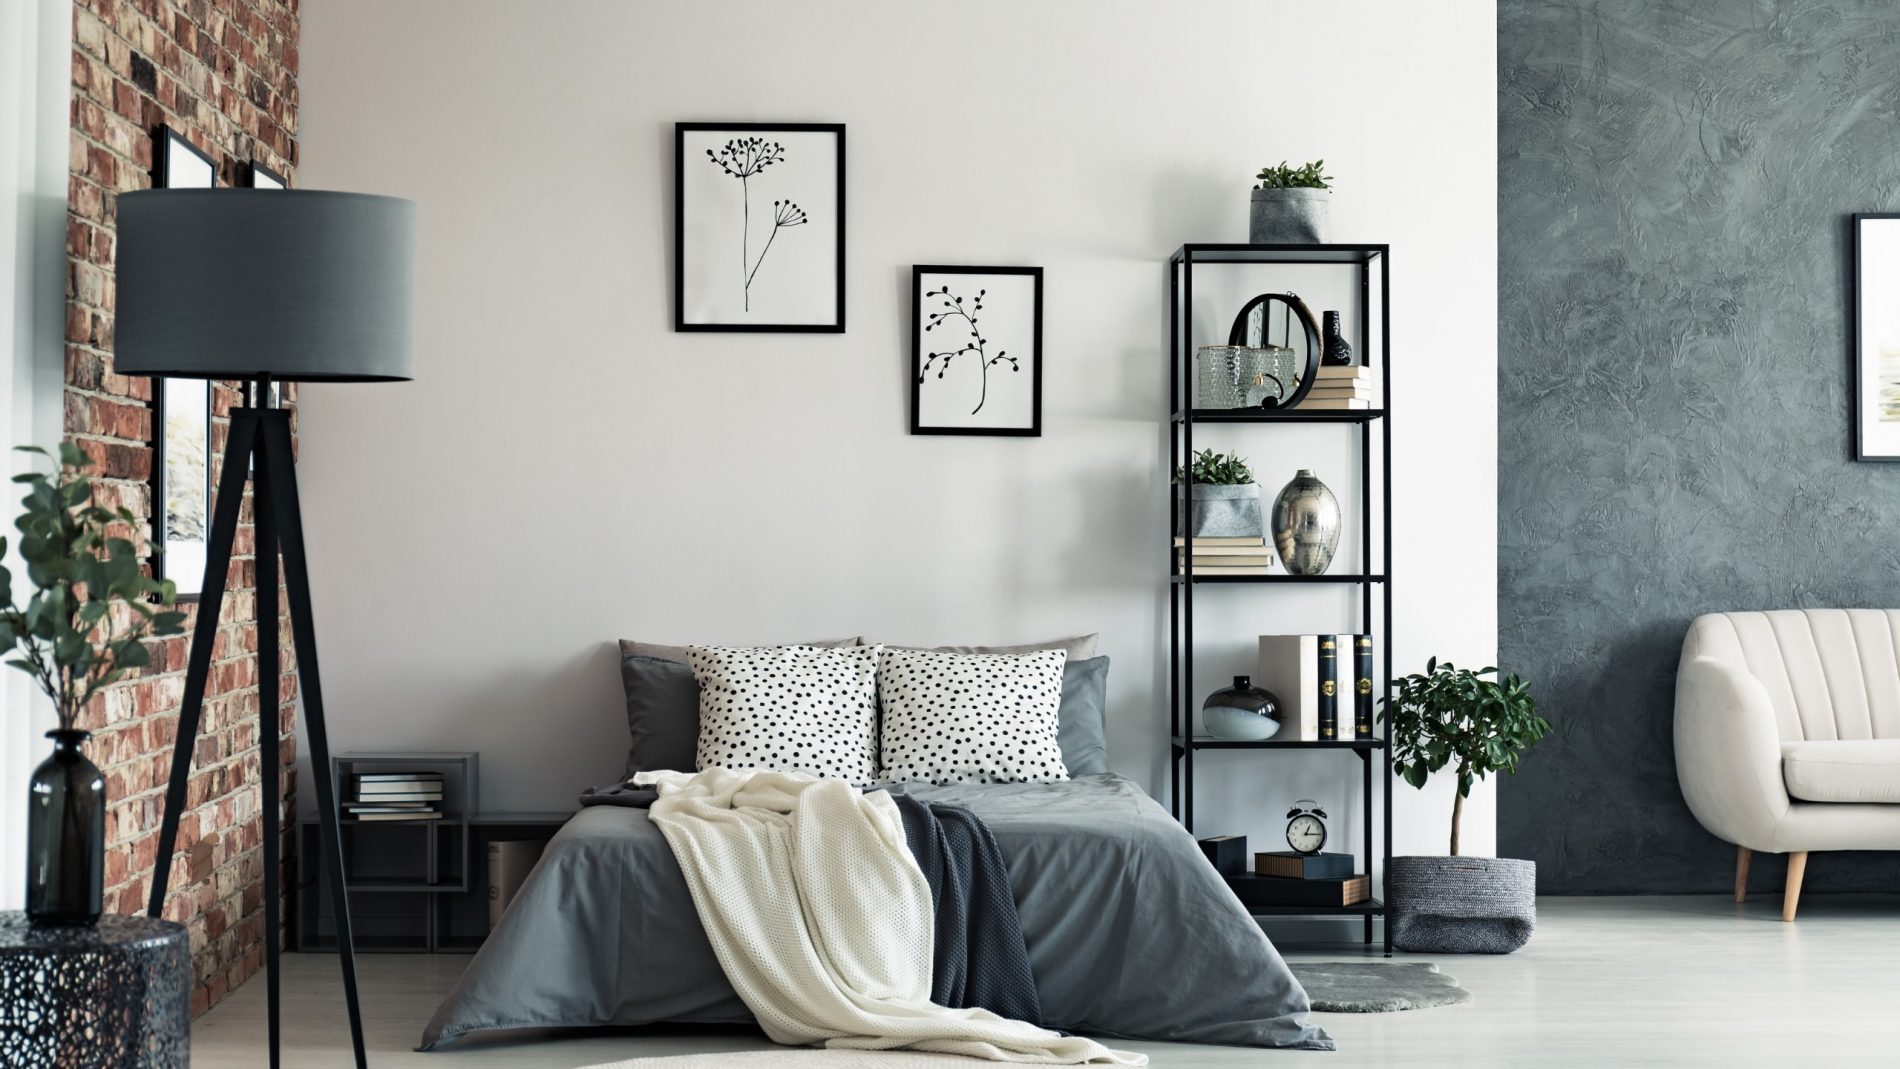 5 products that will make over your bedroom